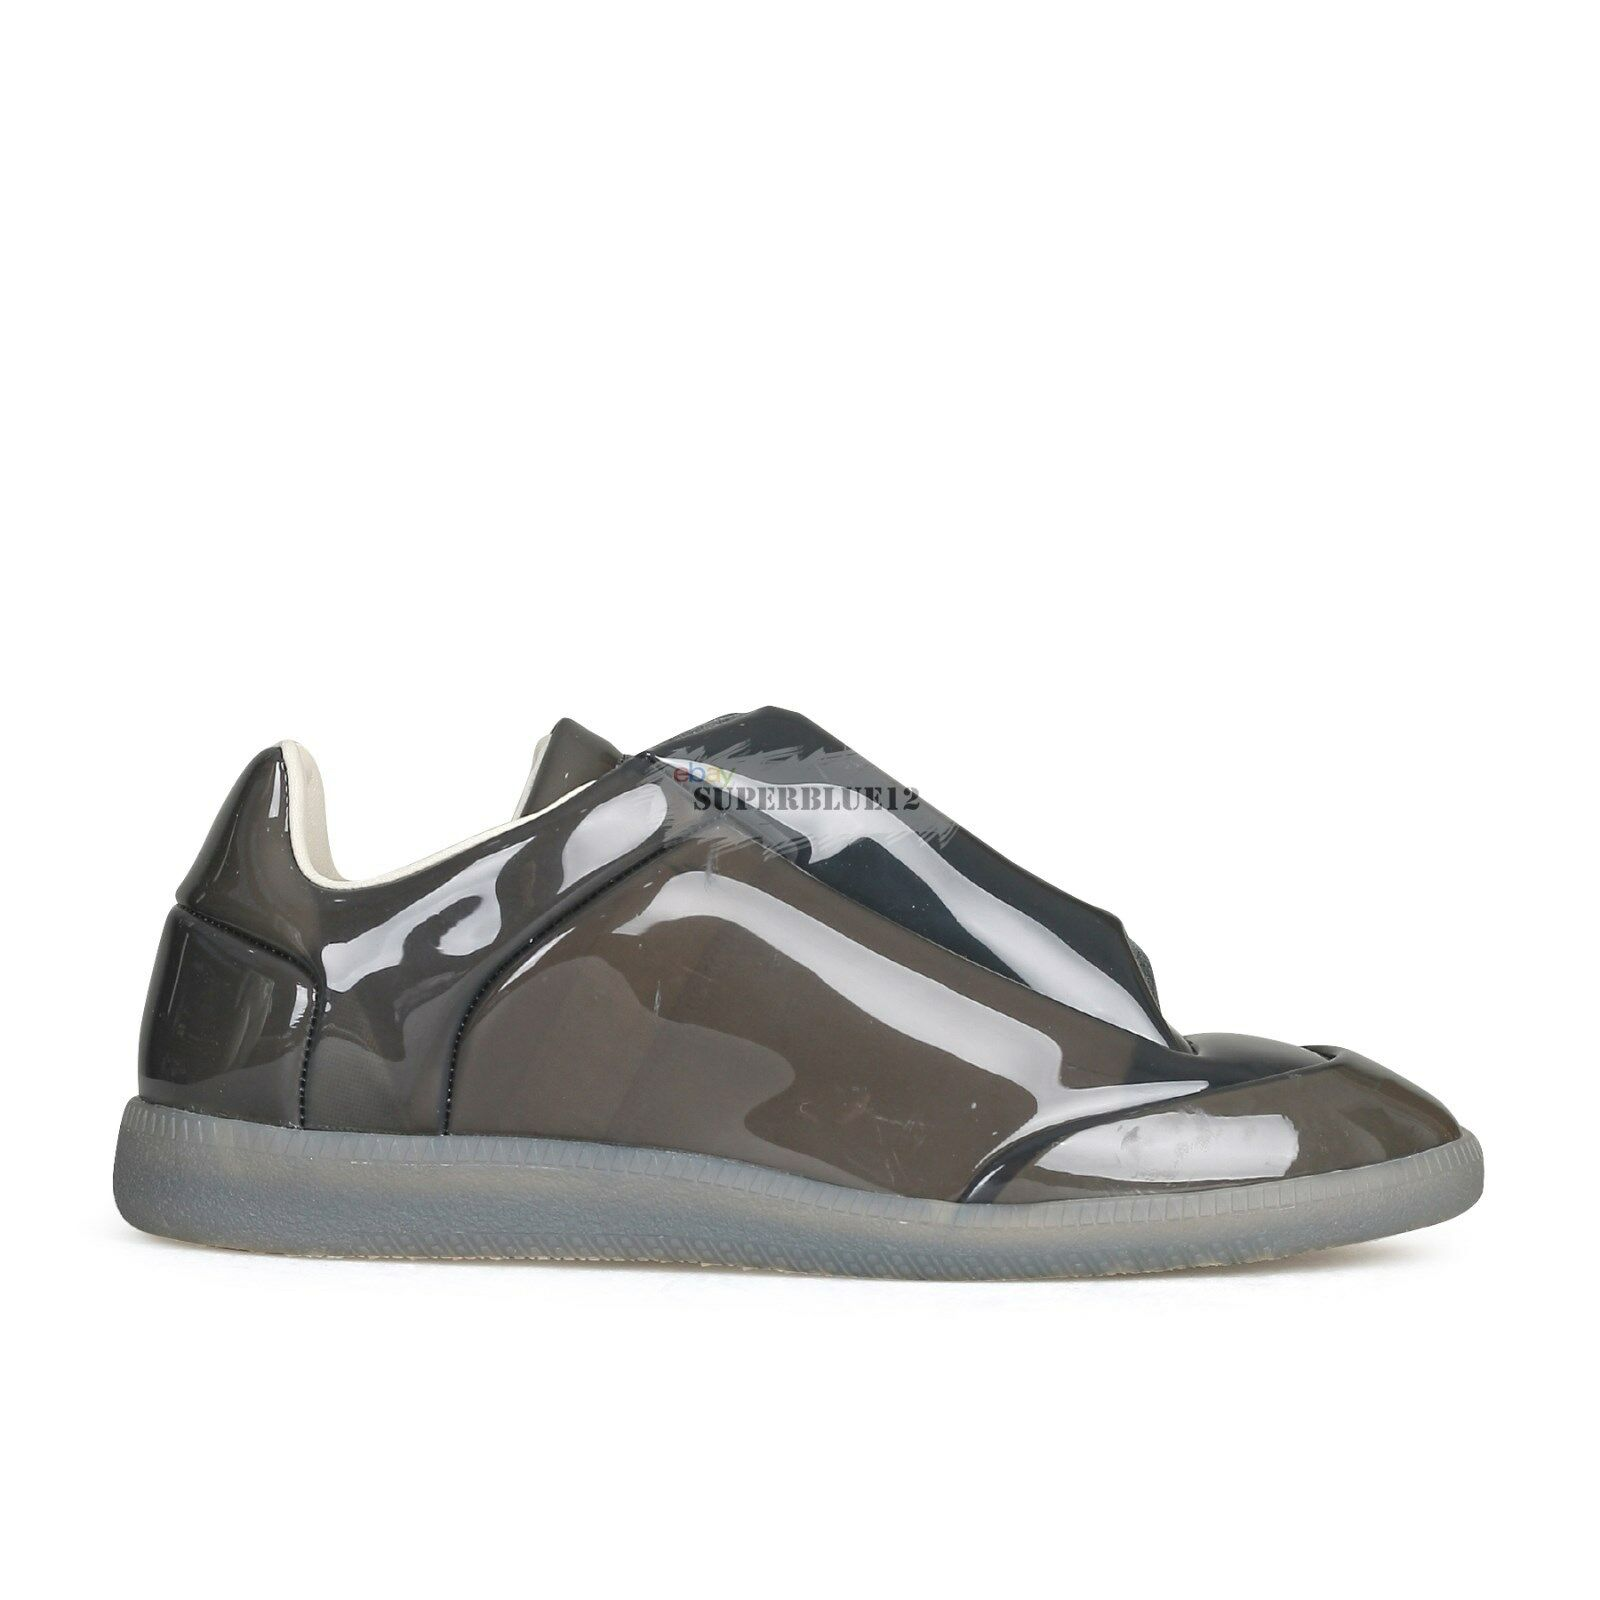 MAISON MARGIELA Grey Transparent Future Low-Top Sneakers FREE SHIPPING